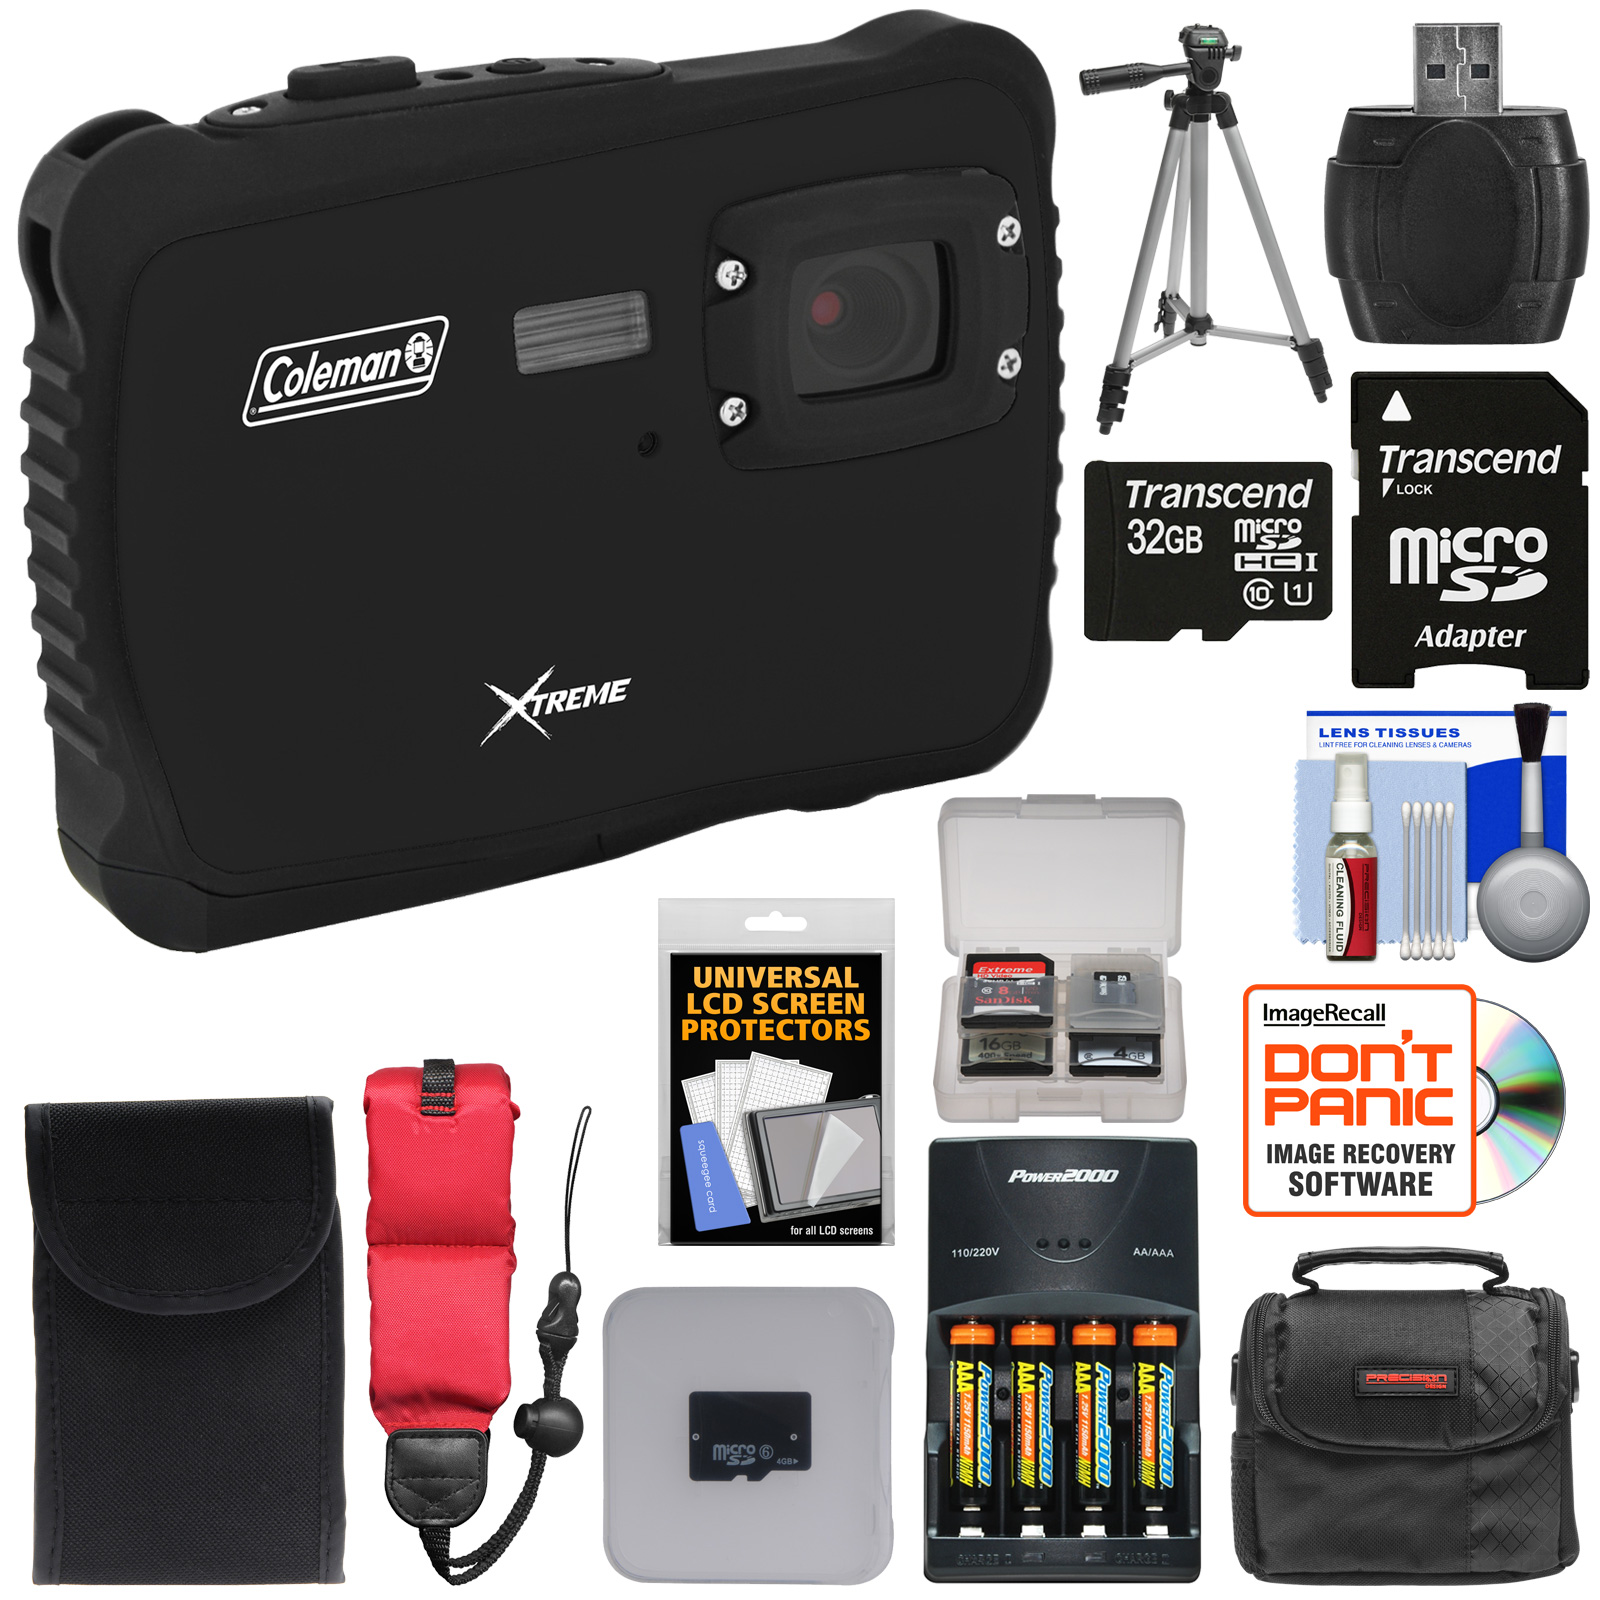 Coleman Xtreme C6WP HD Shock & Waterproof Digital Camera (Red) with 32GB Card + Batteries & Charger + Case + Tripod +... by Coleman